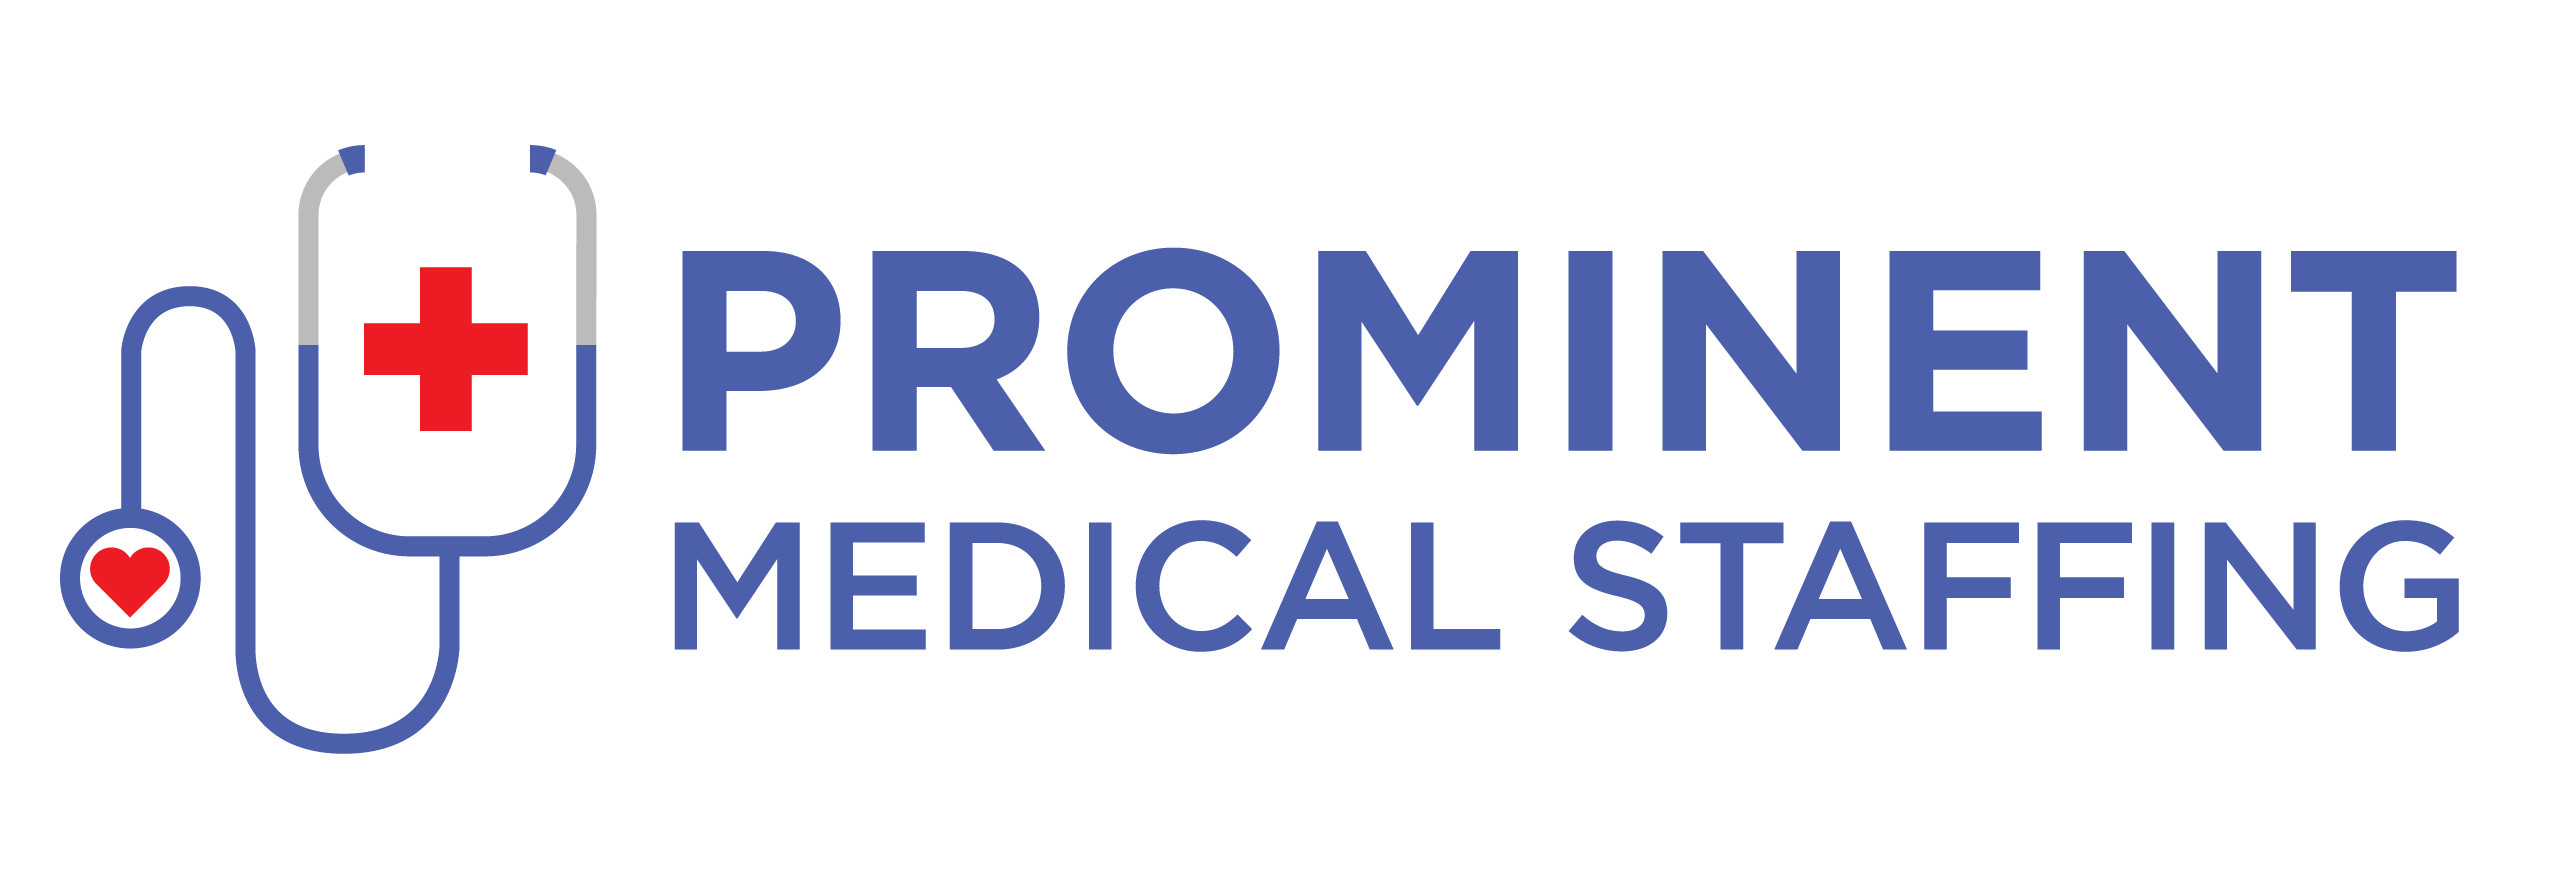 Prominent Medical Staffing